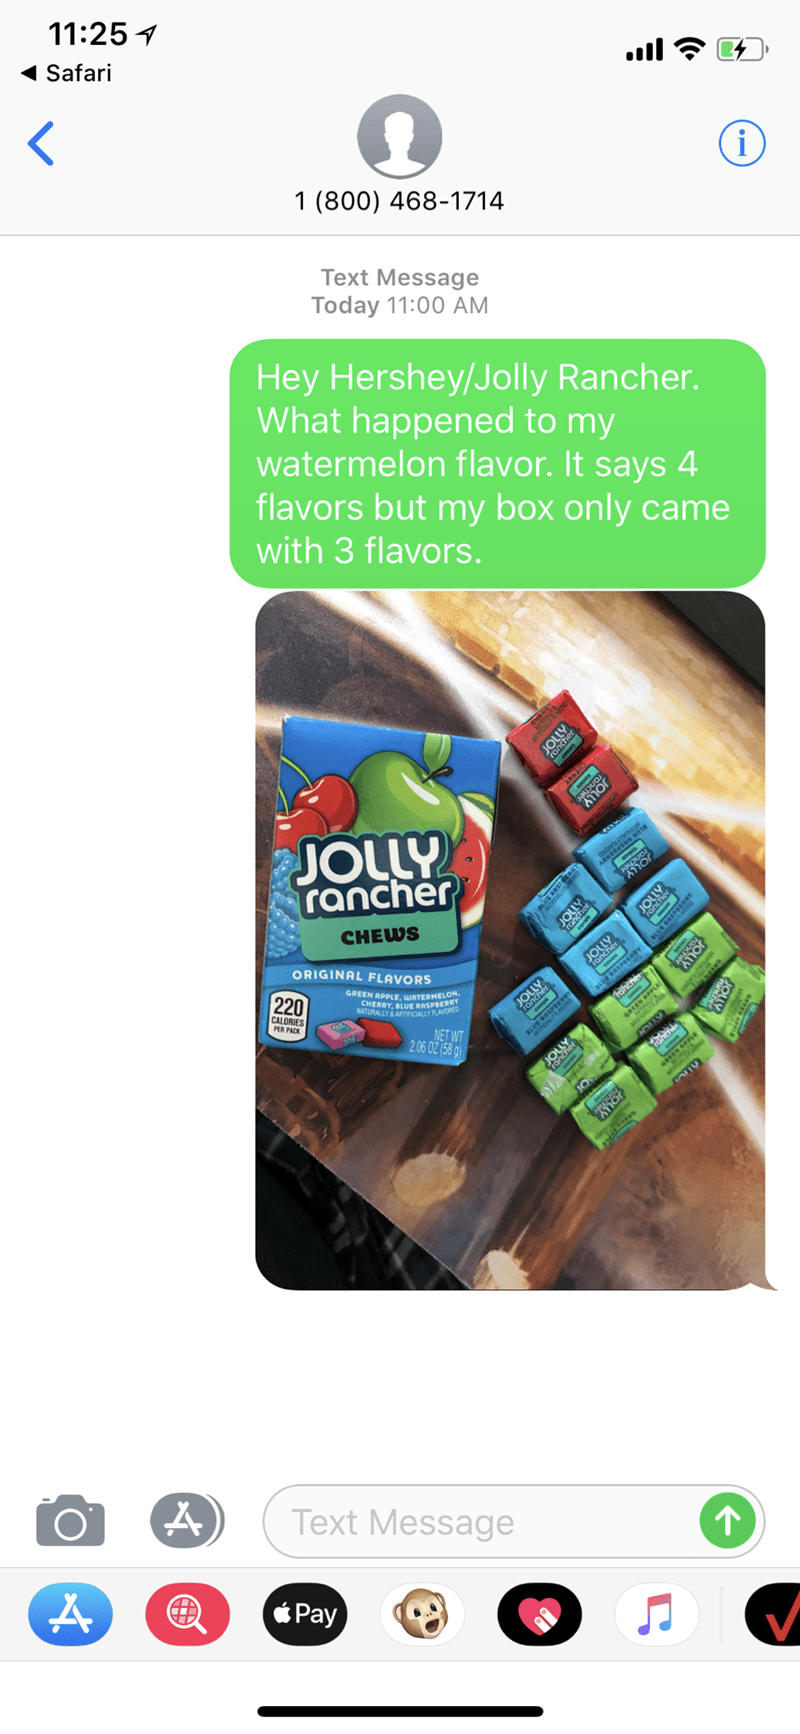 Toy - 11:25 Safari < i 1 (800) 468-1714 Text Message Today 11:00 AM Hey Hershey/Jolly Rancher. What happened to my watermelon flavor. It says 4 flavors but my box only came with 3 flavors. ONO JOLLY rancher CHEWS ORIGINAL FLAVO RS JO GREEN APPLE, WATER RN CHERRY, BLUE NATURALLY&ARTIFICIALLY FLAVORED U SPEERRY 220 roney PLE ELON. CALORIES PER PACK NET WT 2.06 02 (58 g) Text Message Pay Hor aסווr